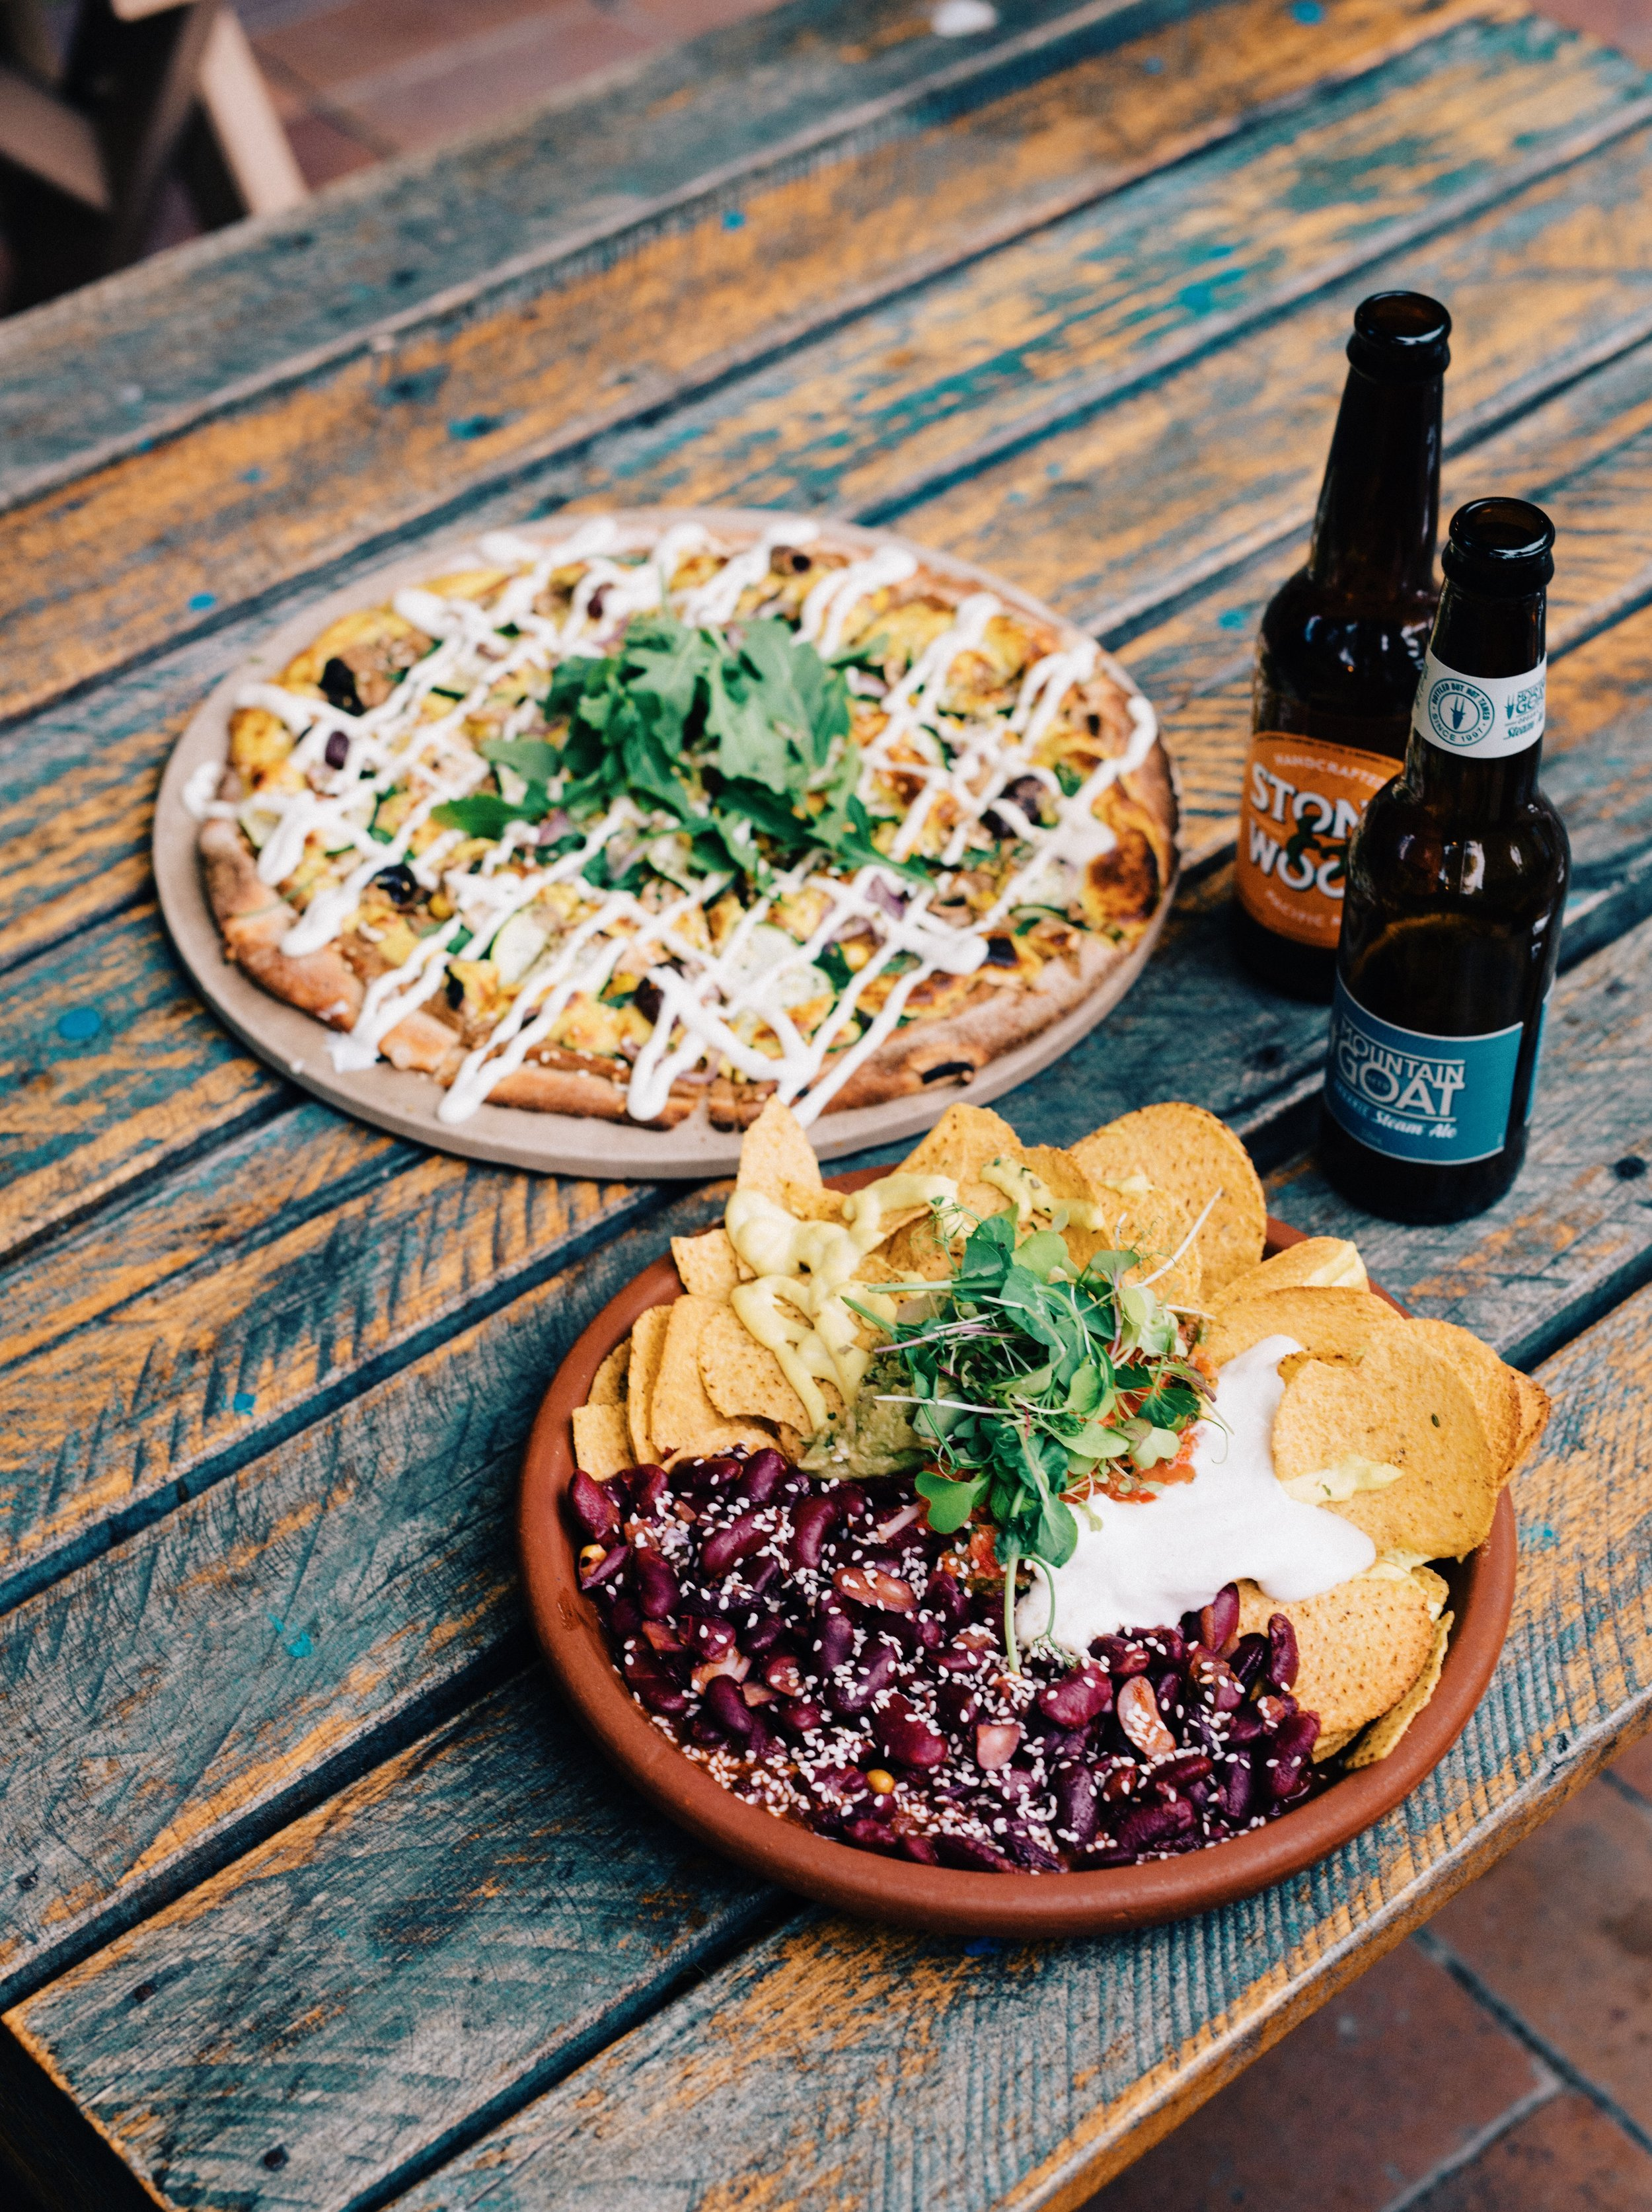 Our fav combo, nachos and pizza